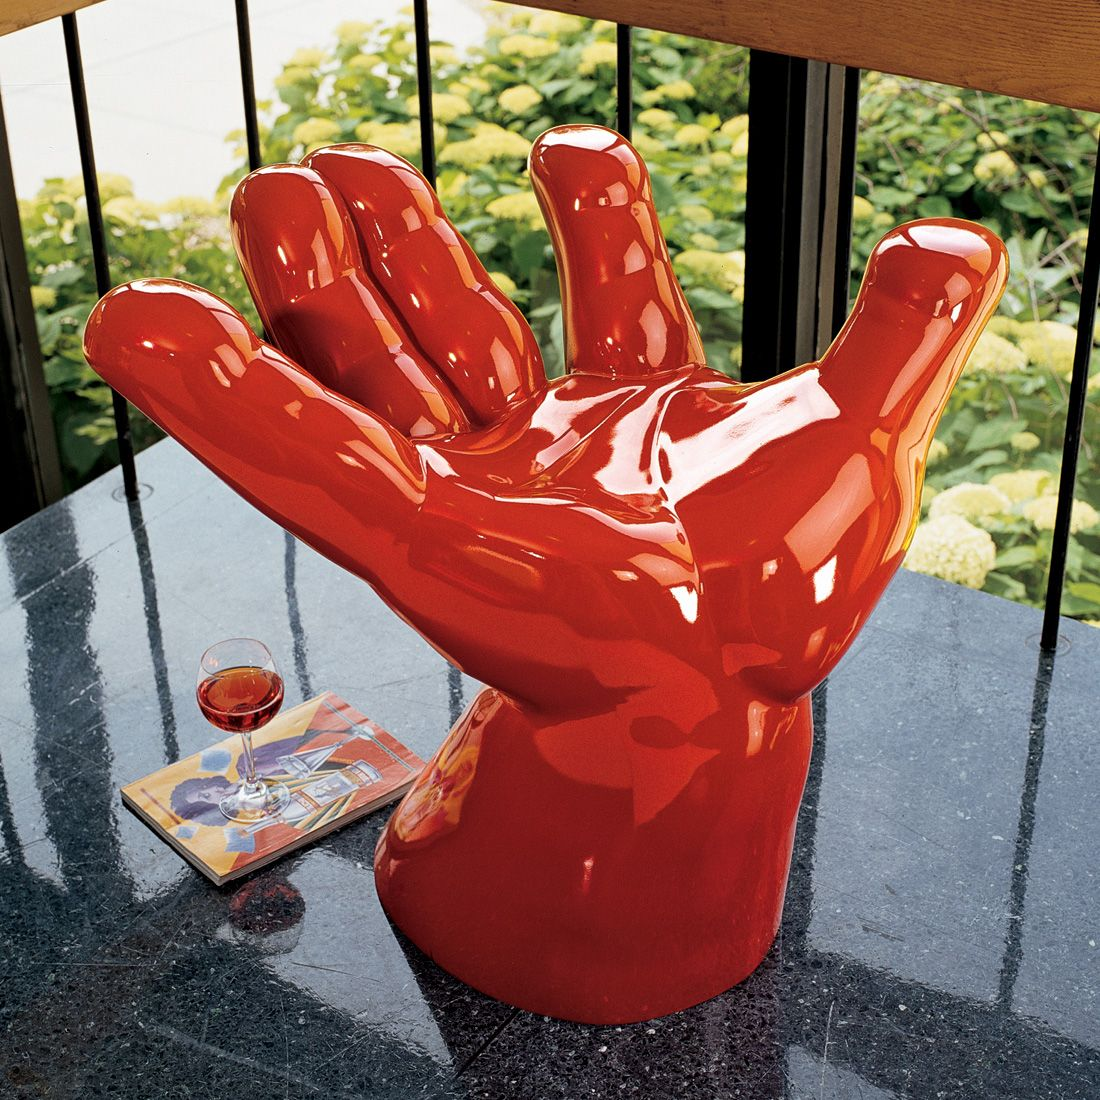 Design Toscano Yb2118 Caught Red-handed Pop Art